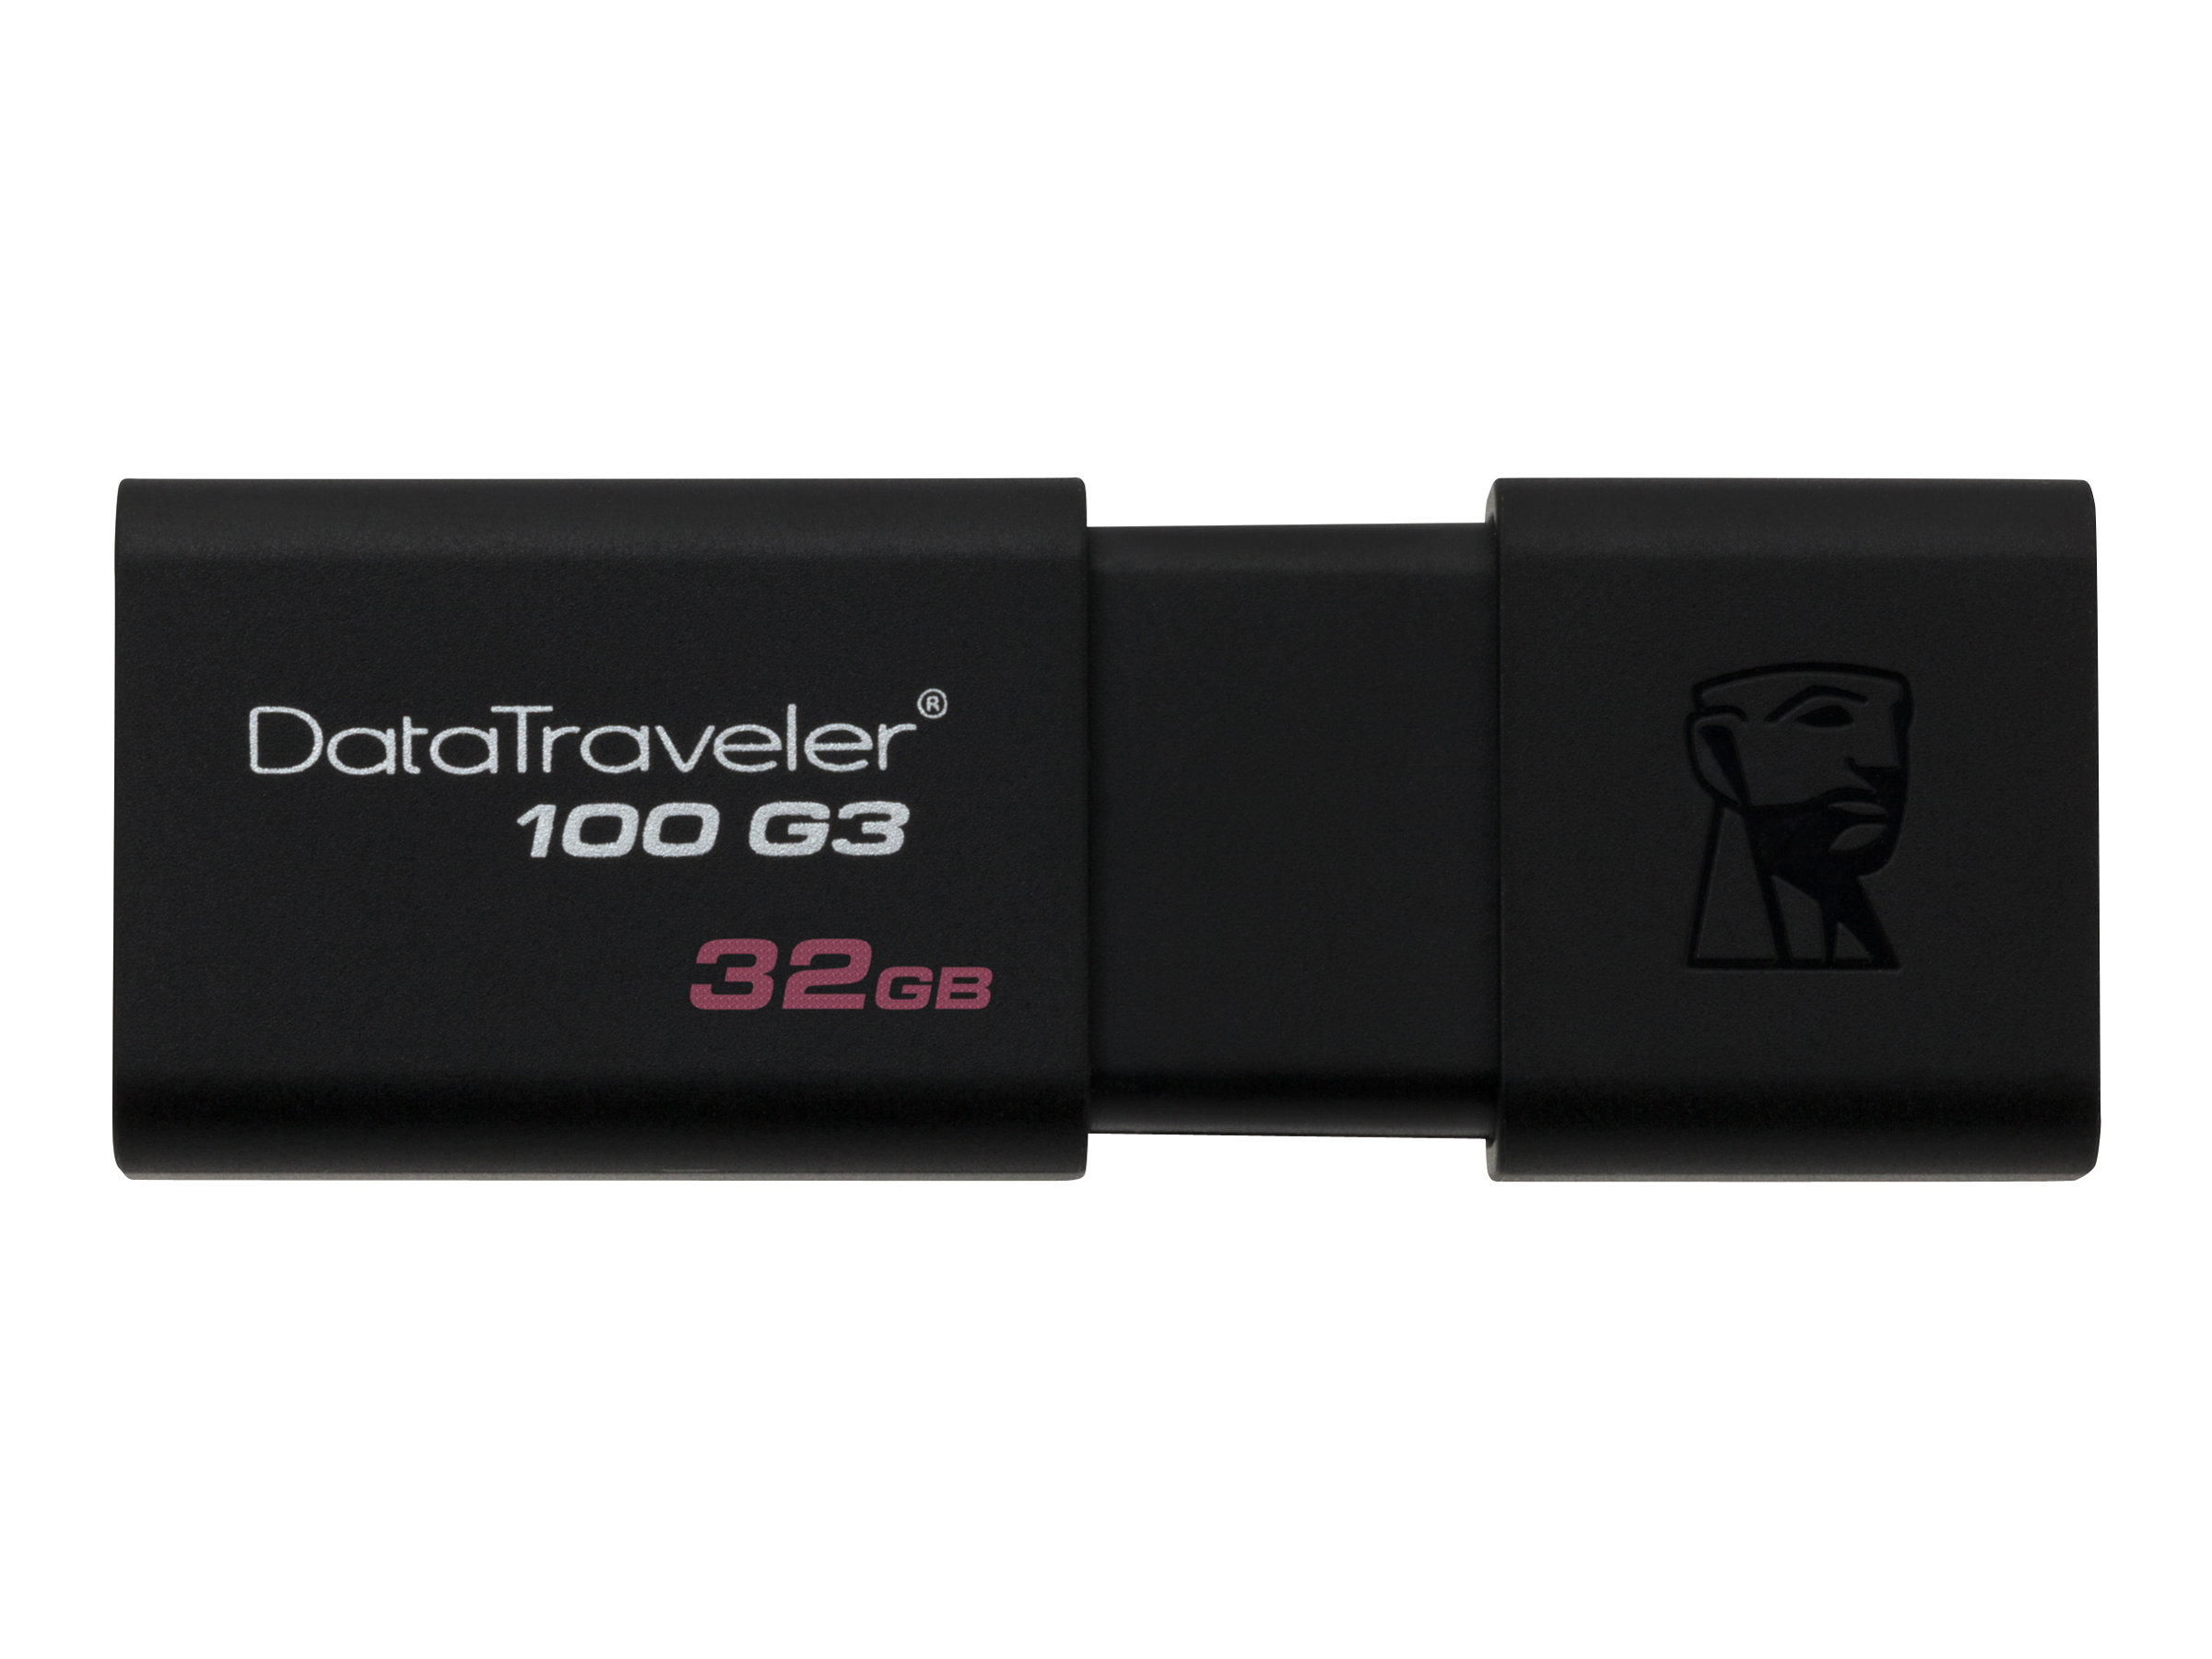 Kingston DataTraveler 100 G3 - USB-Flash-Laufwerk - 32 GB - USB 3.0 - Schwarz